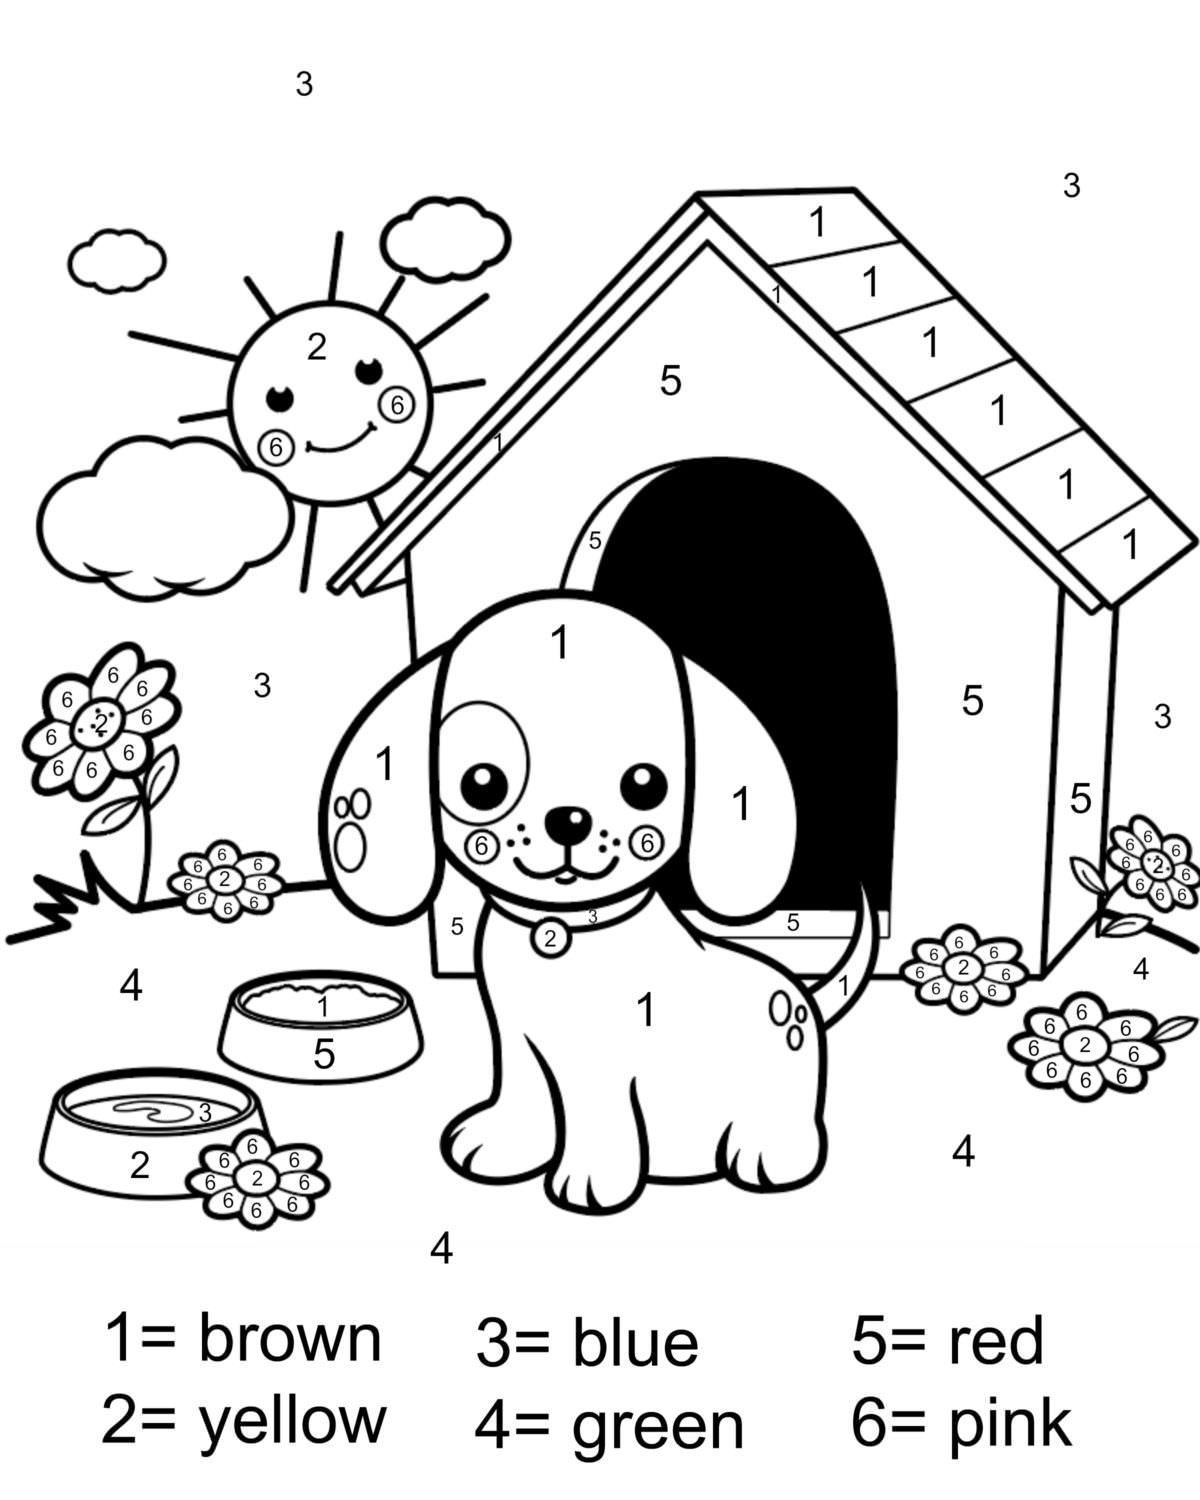 Color by number coloring page free printable my mommy style for Printable color by number pages for kids